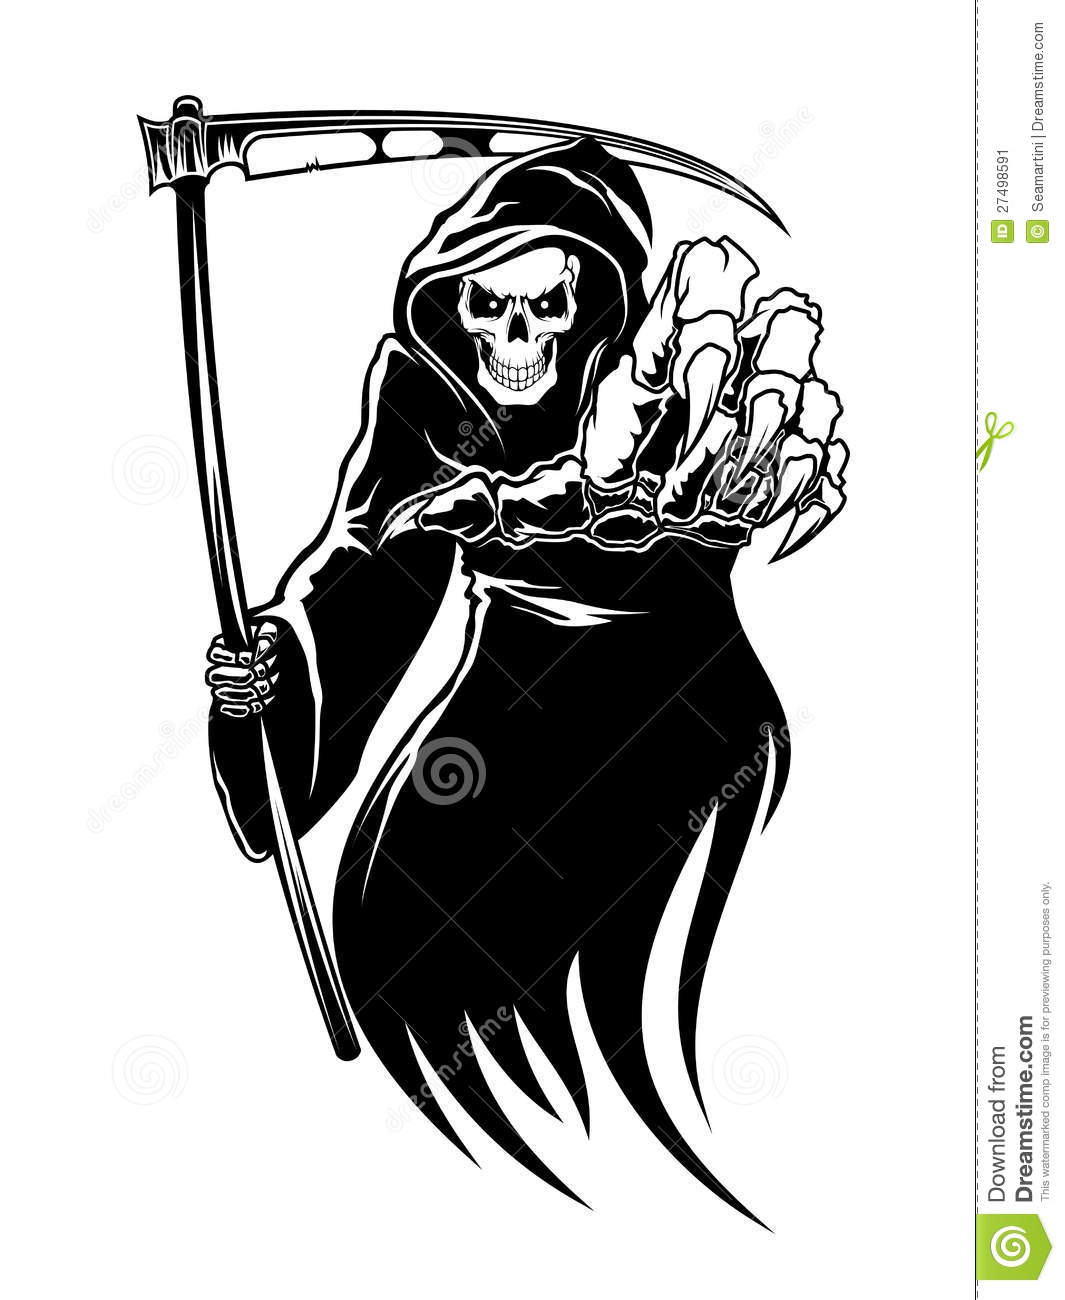 Black death monster with scythe